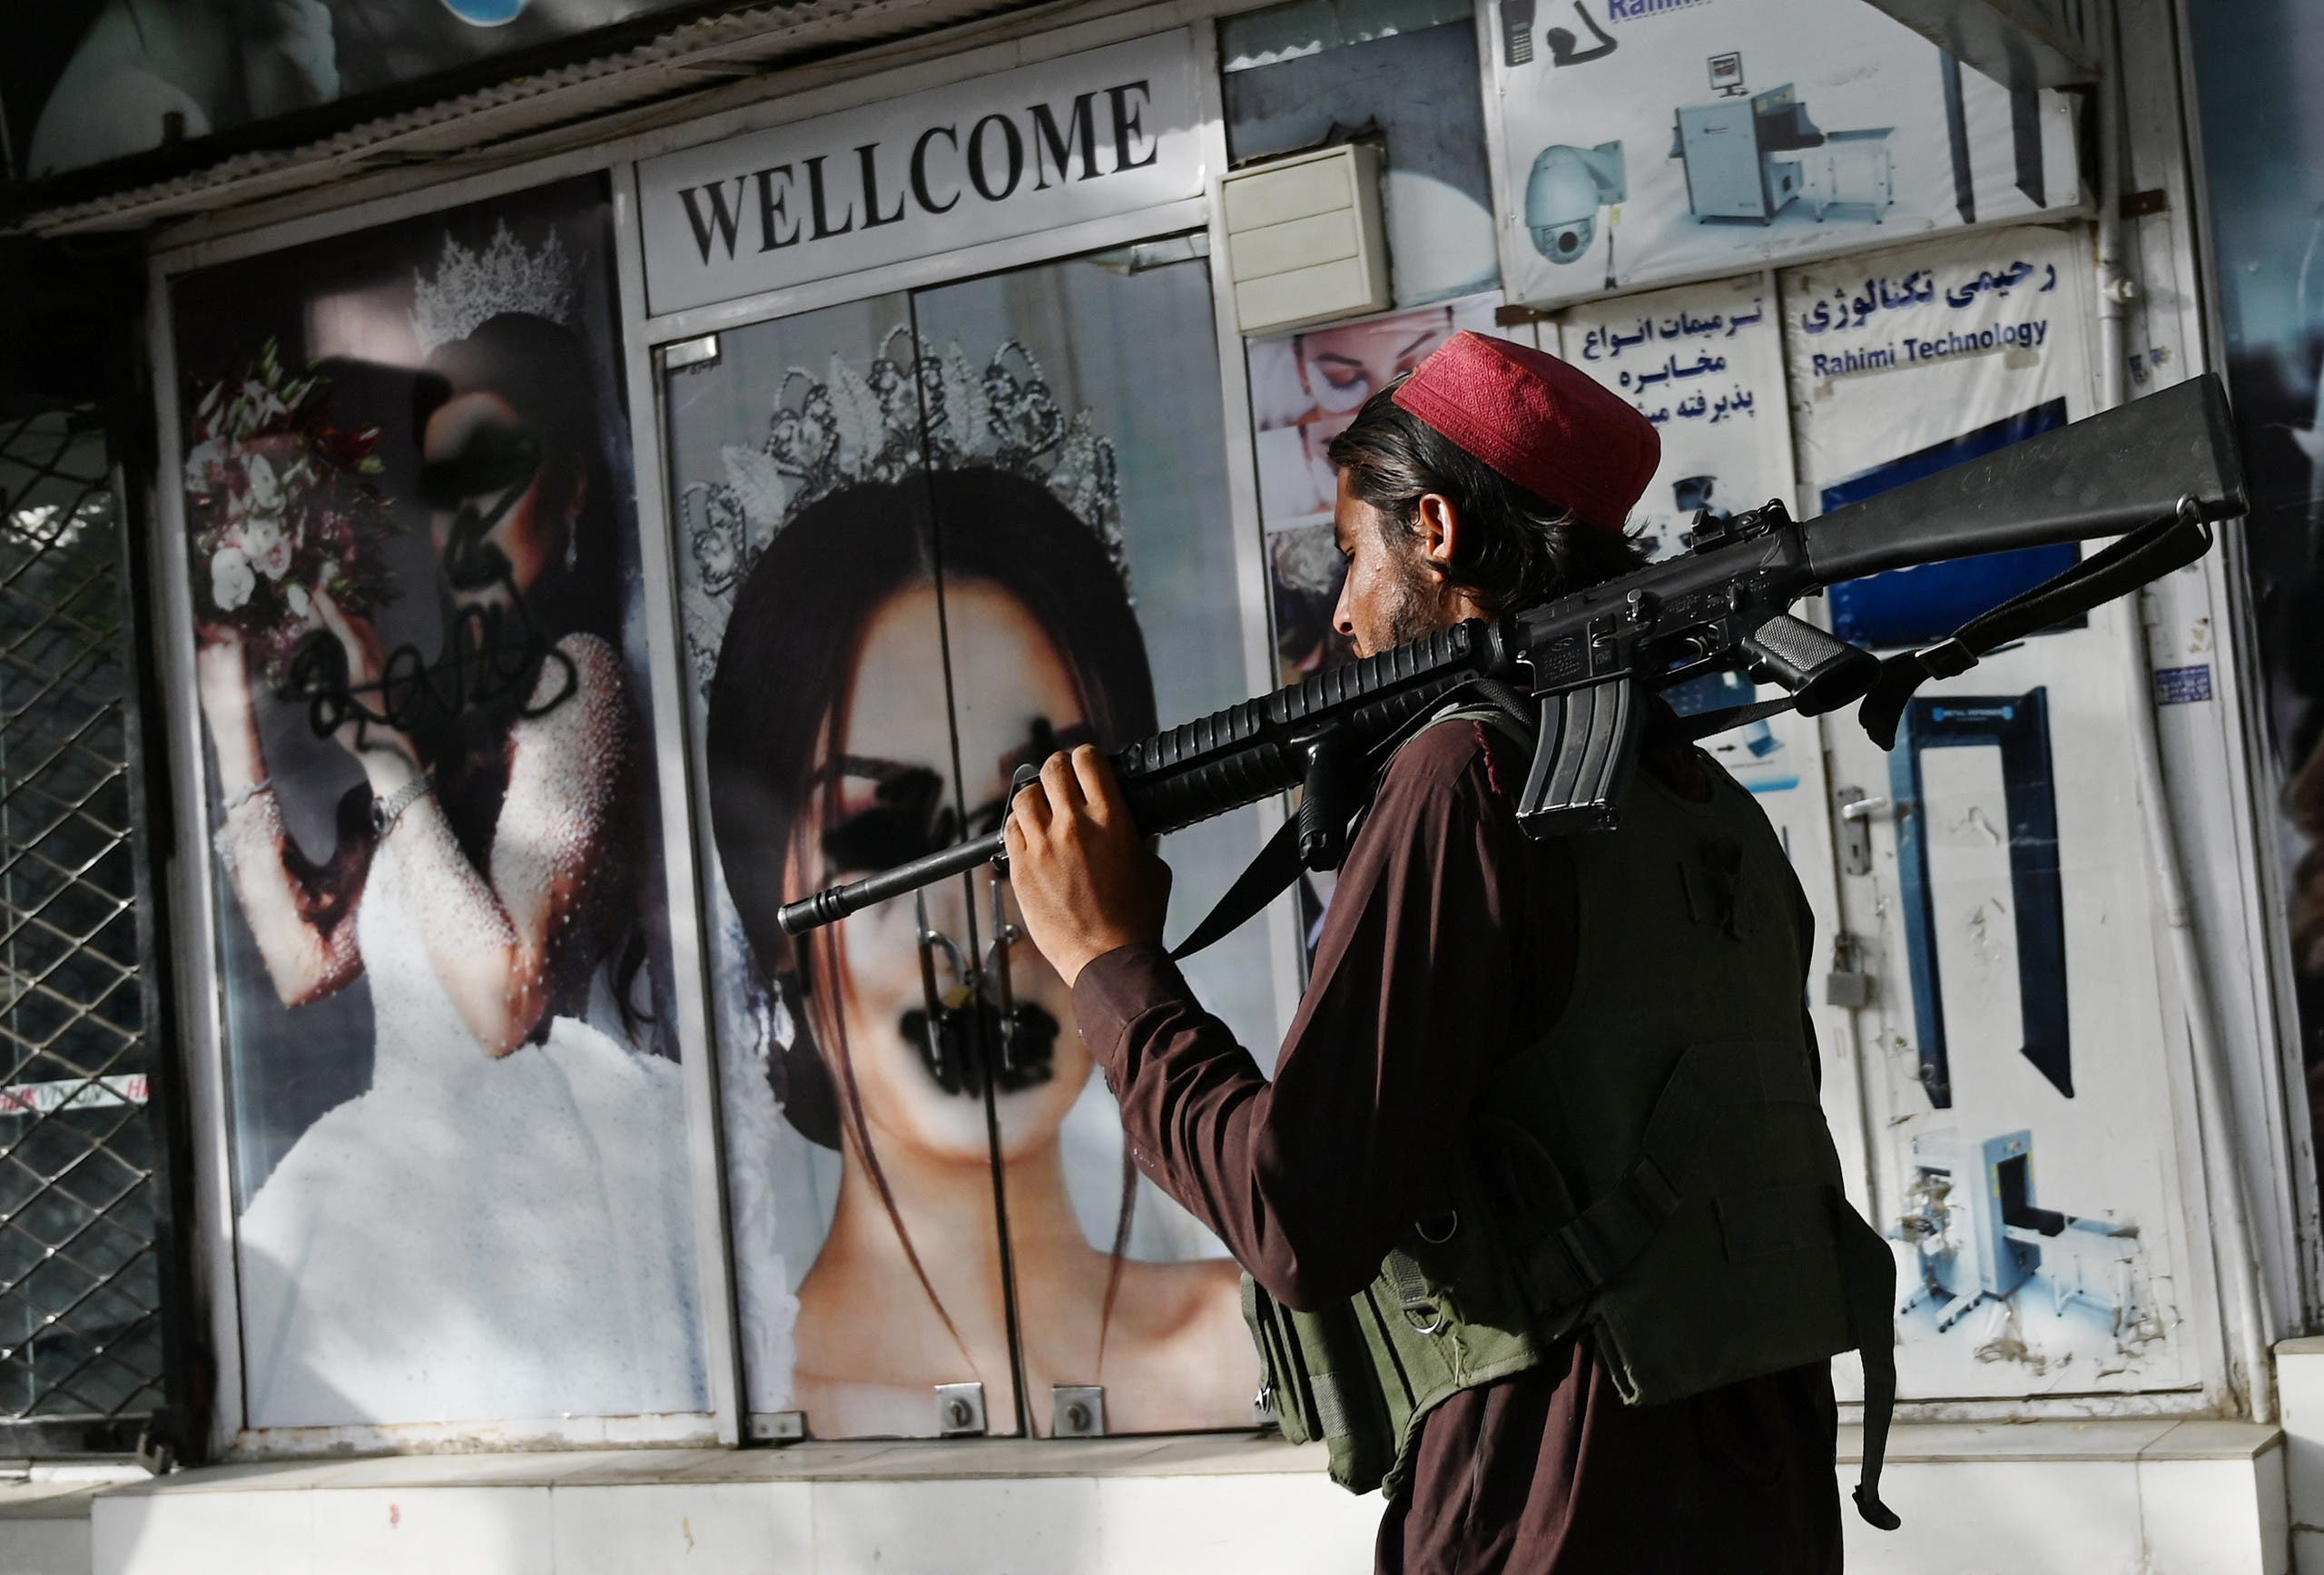 A Taliban fighter walks past a beauty salon with images of women defaced using spray paint in Shar-e-Naw in Kabul on August 18, 2021. (File photo: AFP)